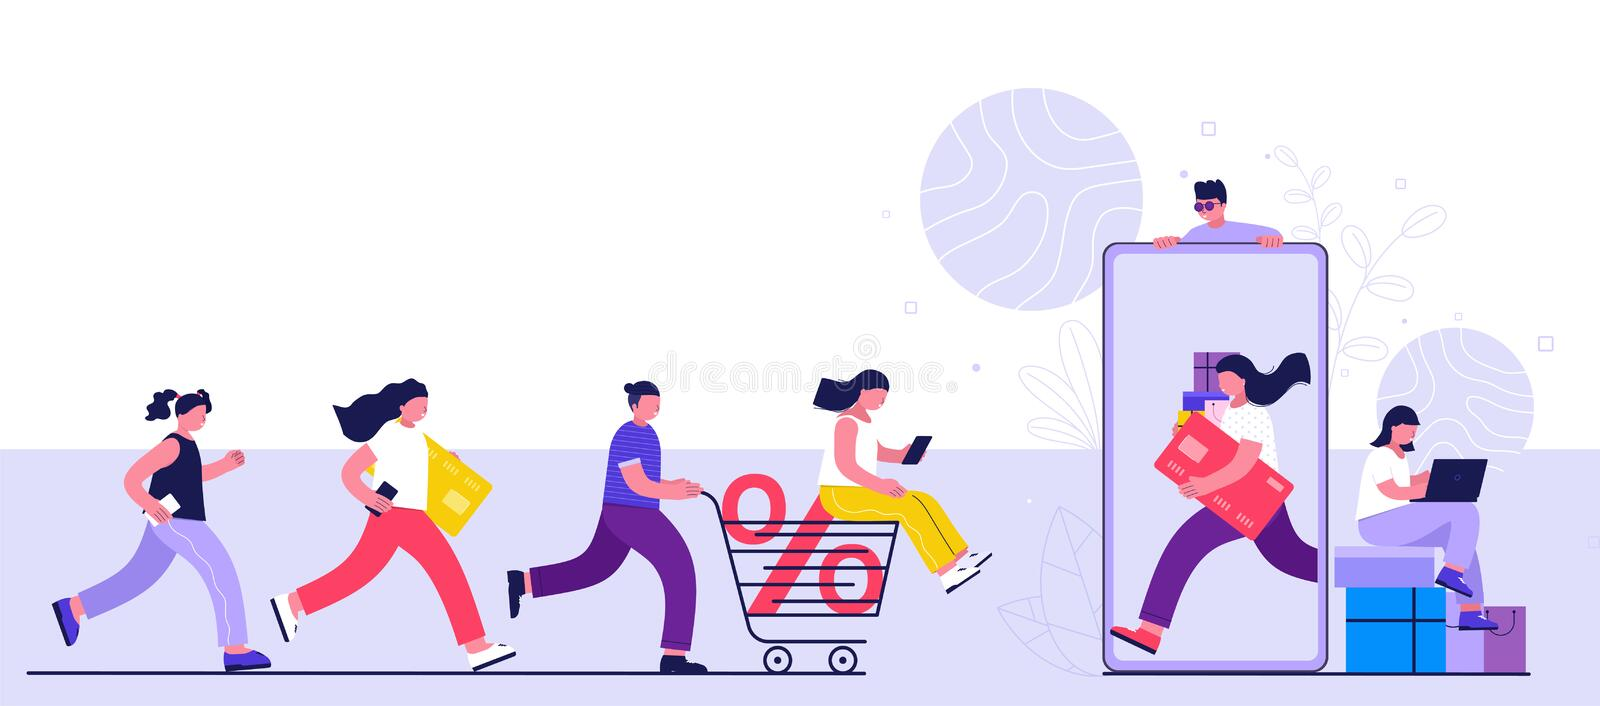 Online shopping concept, consumerism and people. Young people women and men make purchases using a smartphone, laptop. Landing page template vector illustration